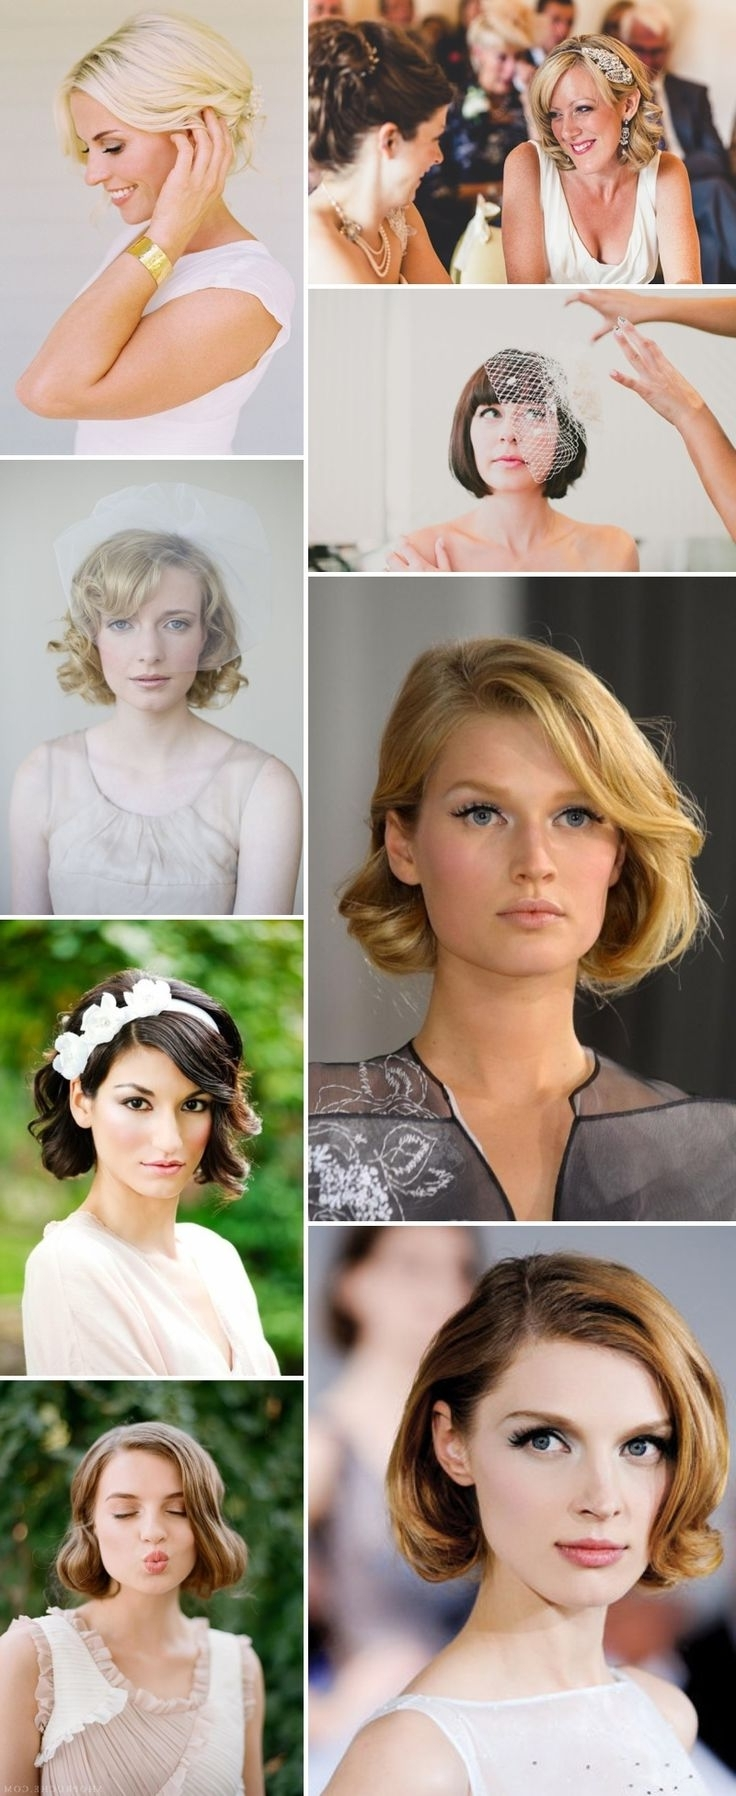 Latest Wedding Hairstyles For Short Bob Hair For Cool Hairstyles With Short Hair Hairstyle Fodo Women Look Pretty (View 12 of 15)